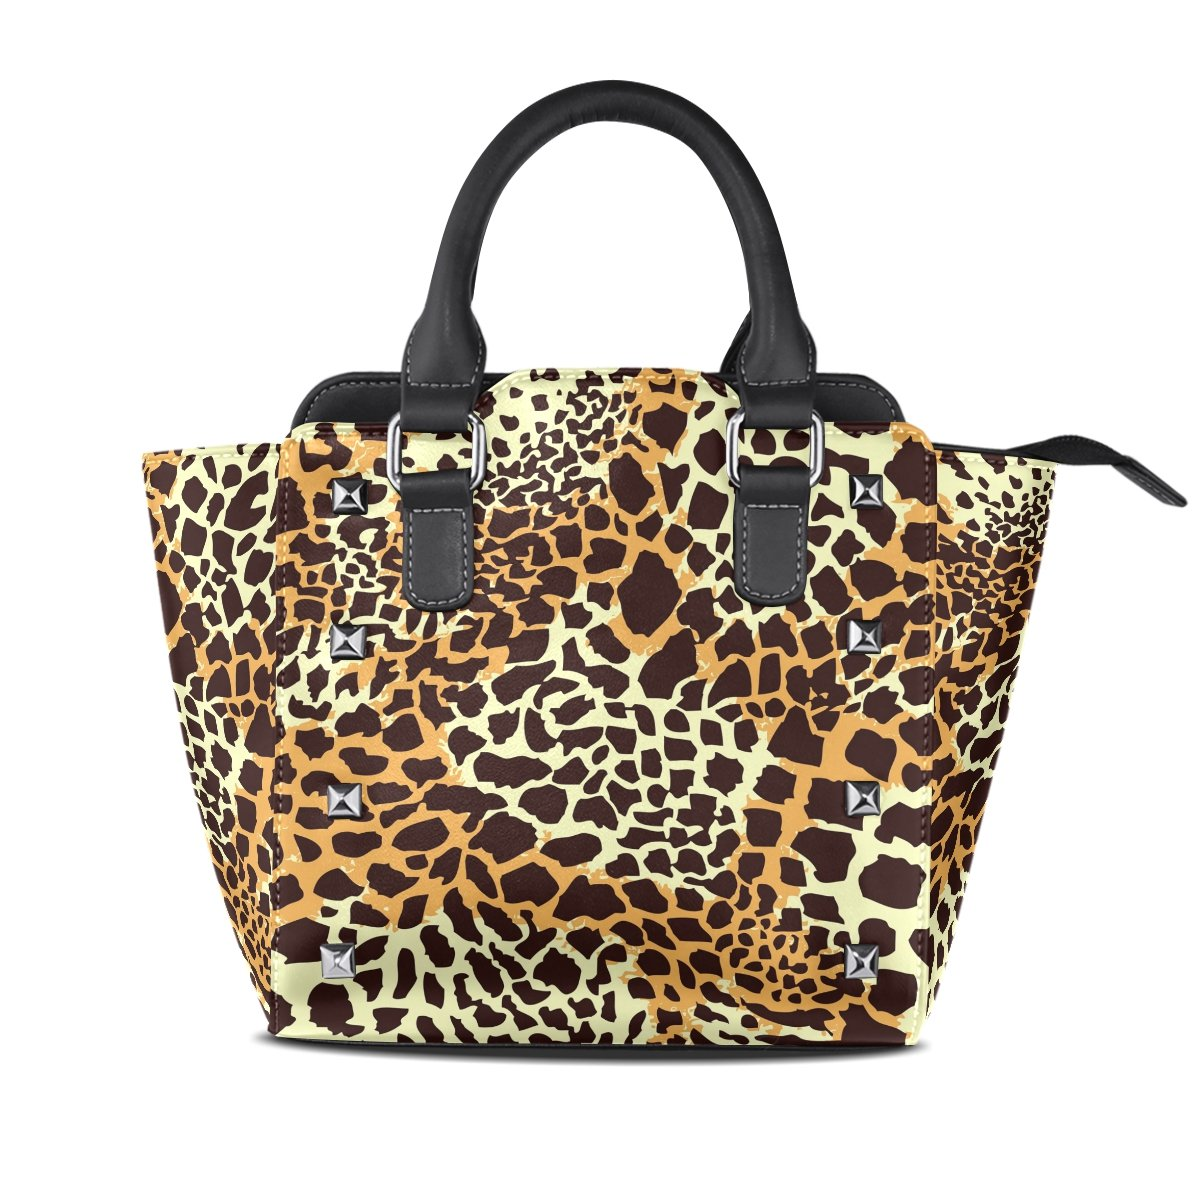 Womens Genuine Leather Hangbags Tote Bags Leopard Print Purse Shoulder Bags